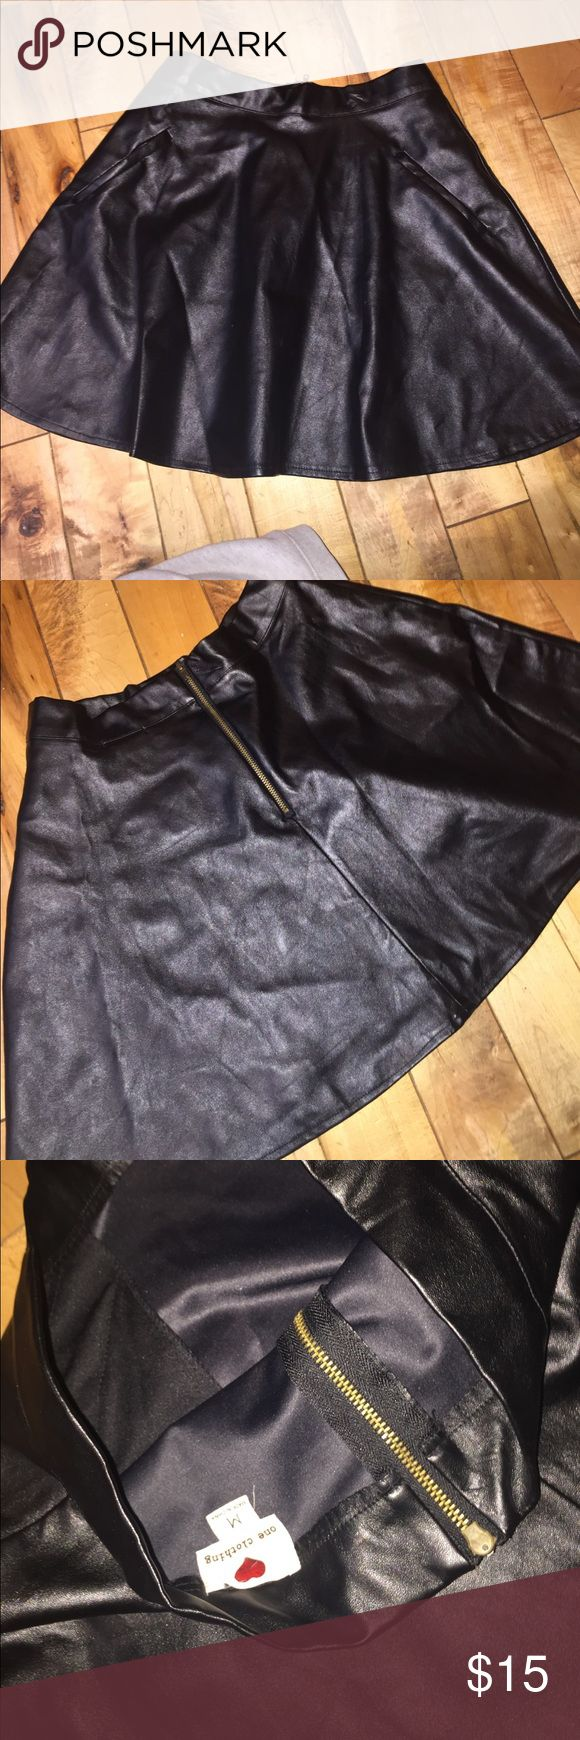 Faux leather skater skirt Used once size medium brand one clothing faux leather skater skirt with pockets . Zips in the back .16 inches long one clothing Skirts Circle & Skater